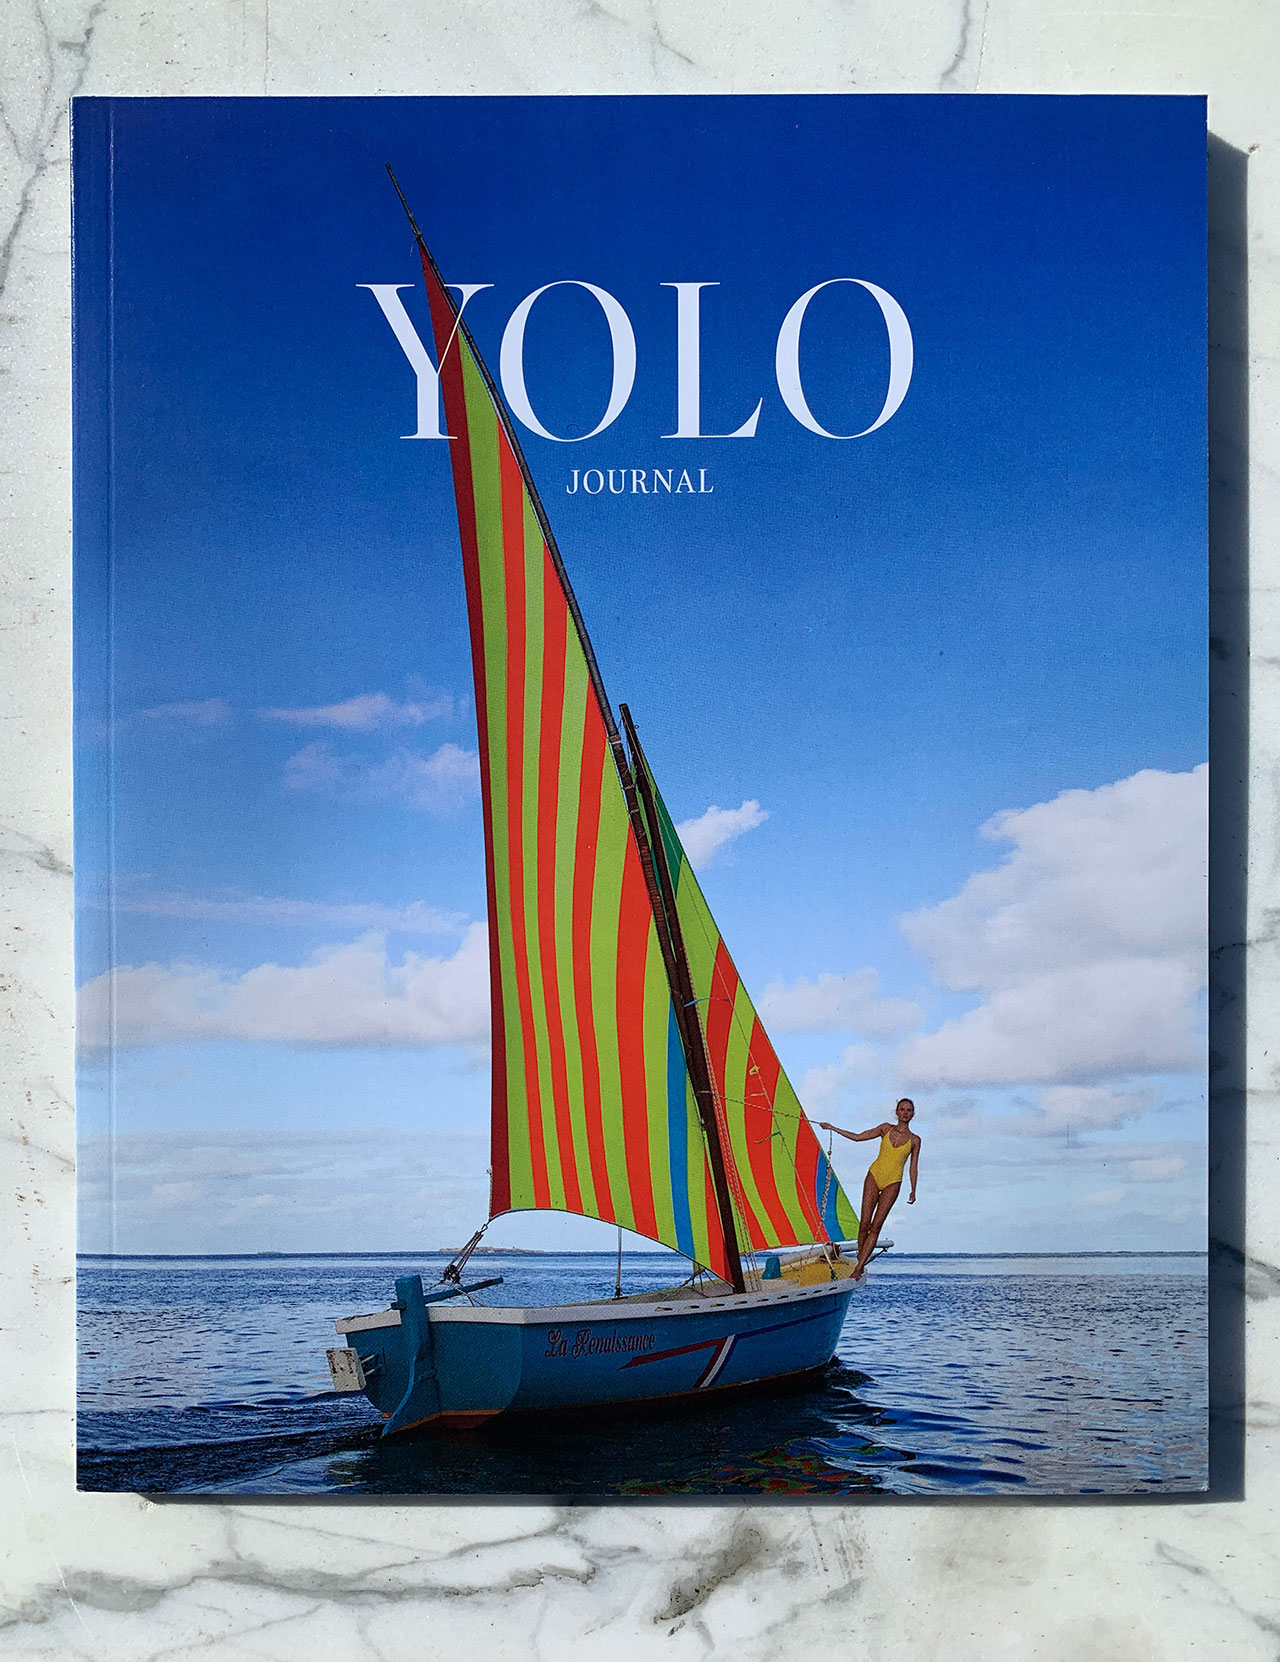 The Winter/Spring 2020 cover of YOLO Journal, featuring the Founder & Creative Director of Alicia Swim, Alicia Rountree in Mauritius. Photo by Dewey Nicks.